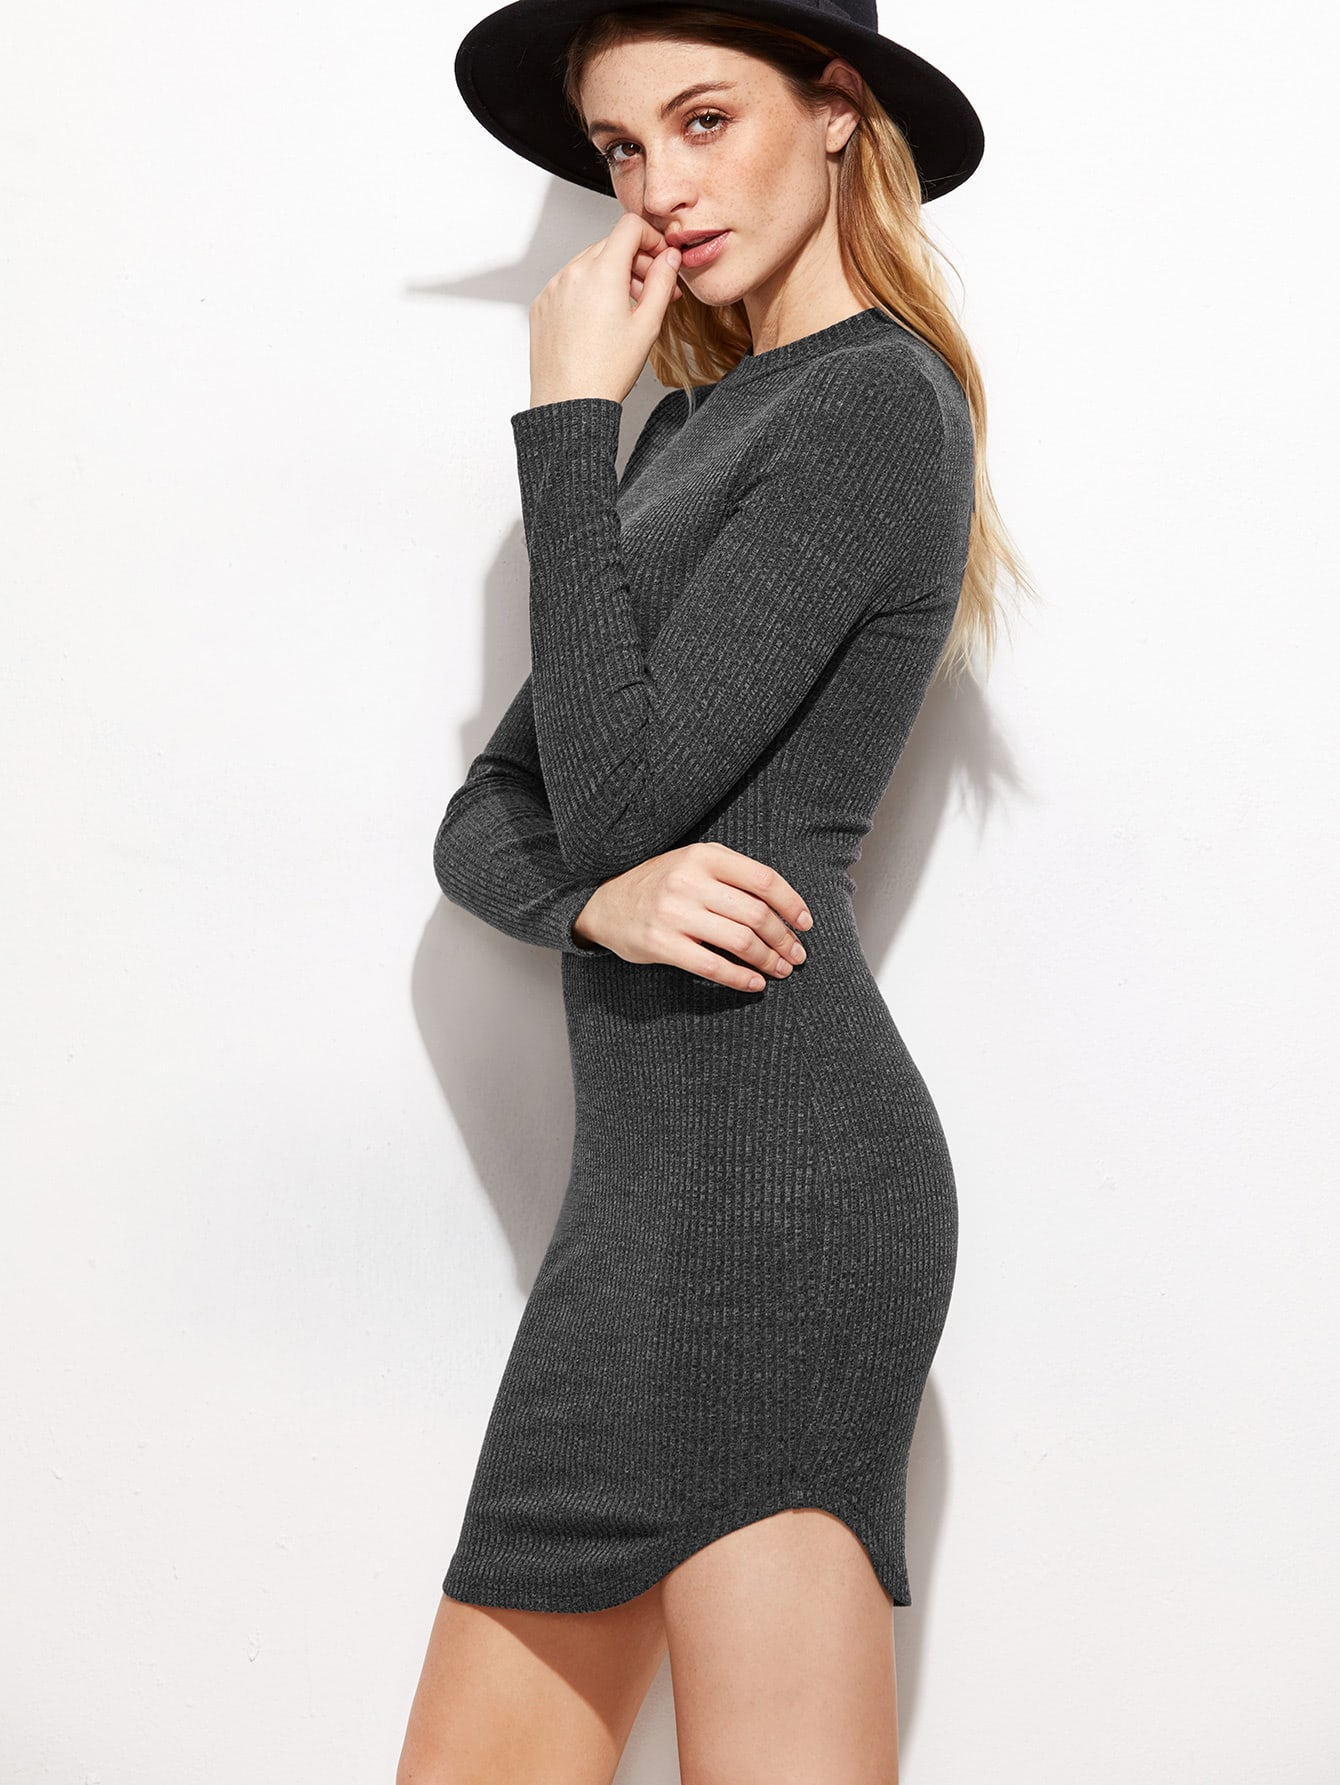 Ribbed Knit Curved Hem Bodycon Dress dress161028703